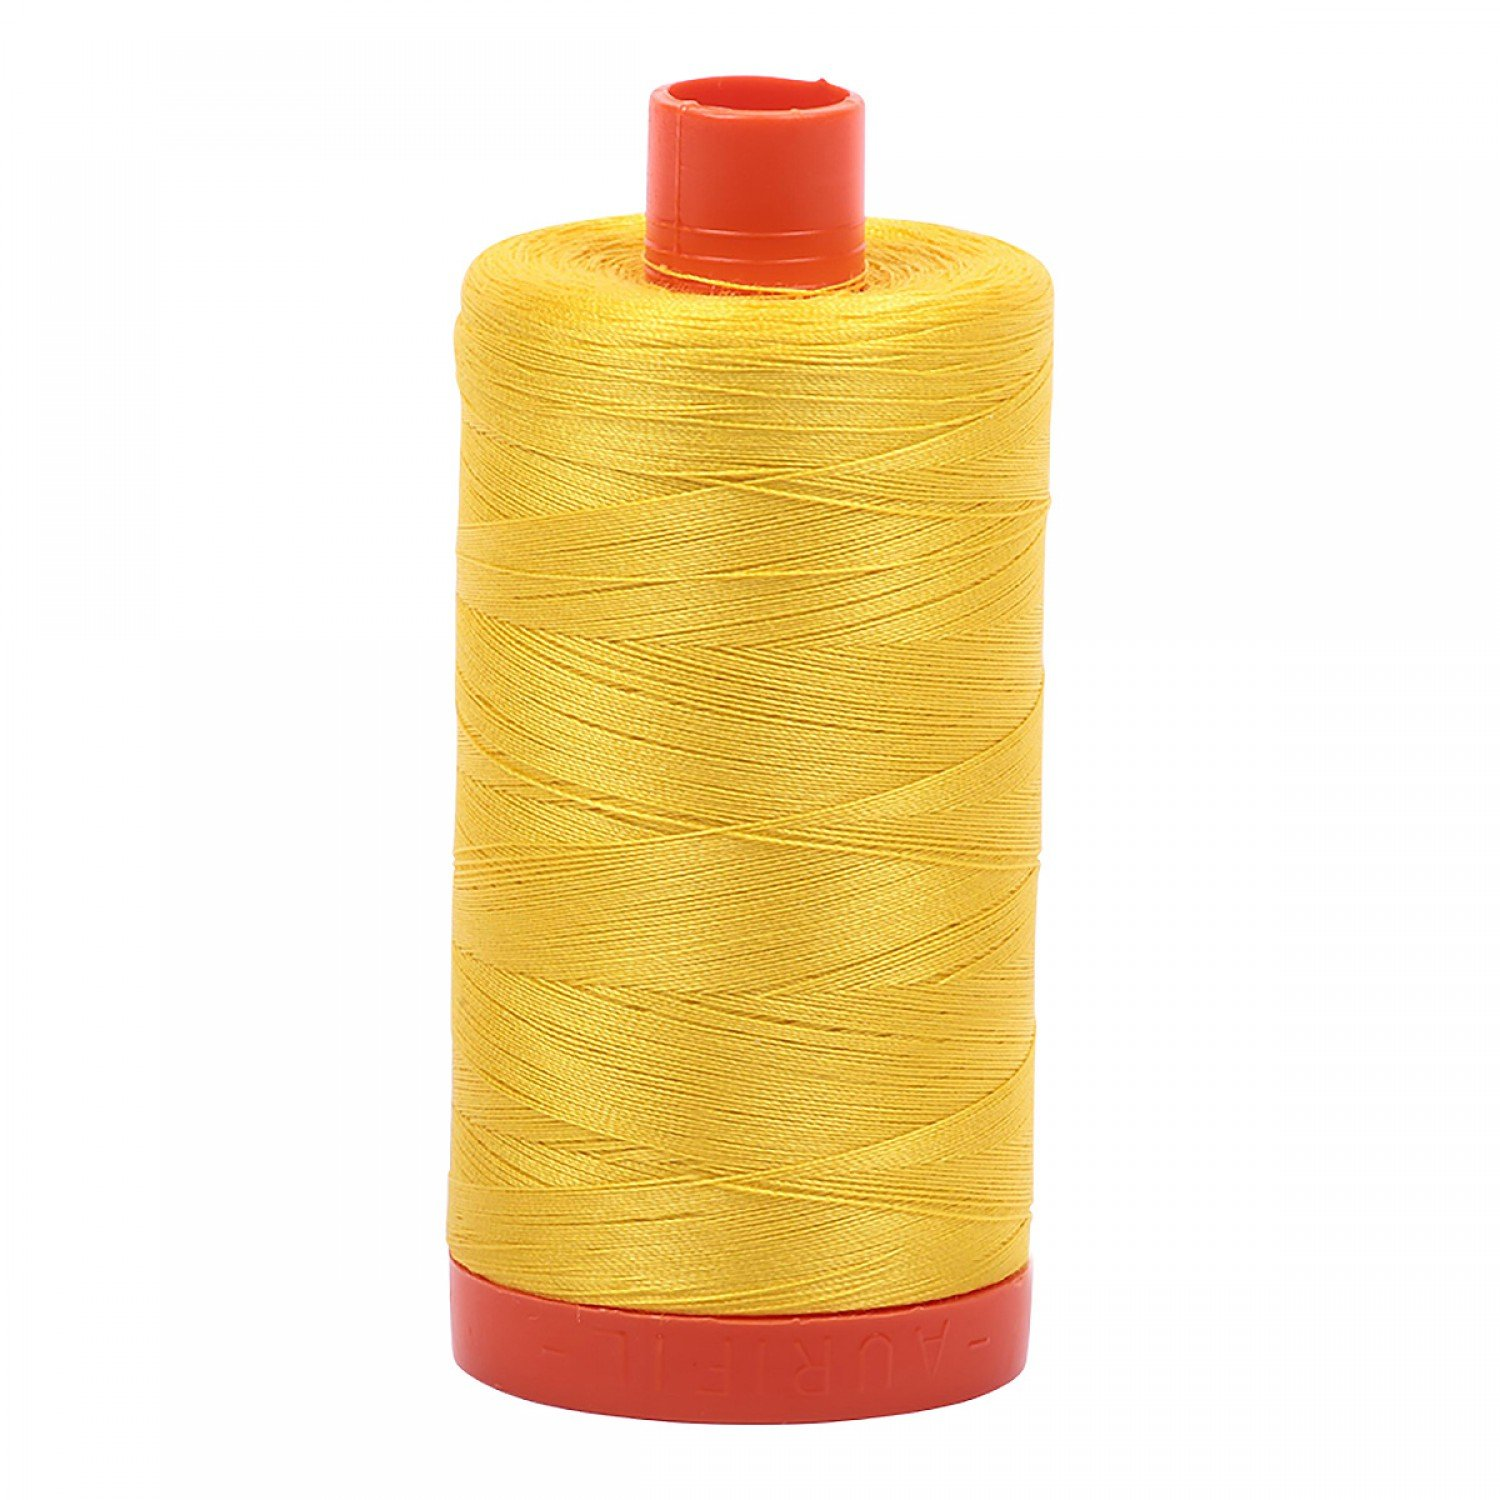 Aurifil 2120 - Mako Cotton Thread Solid 50wt 1422yds Canary